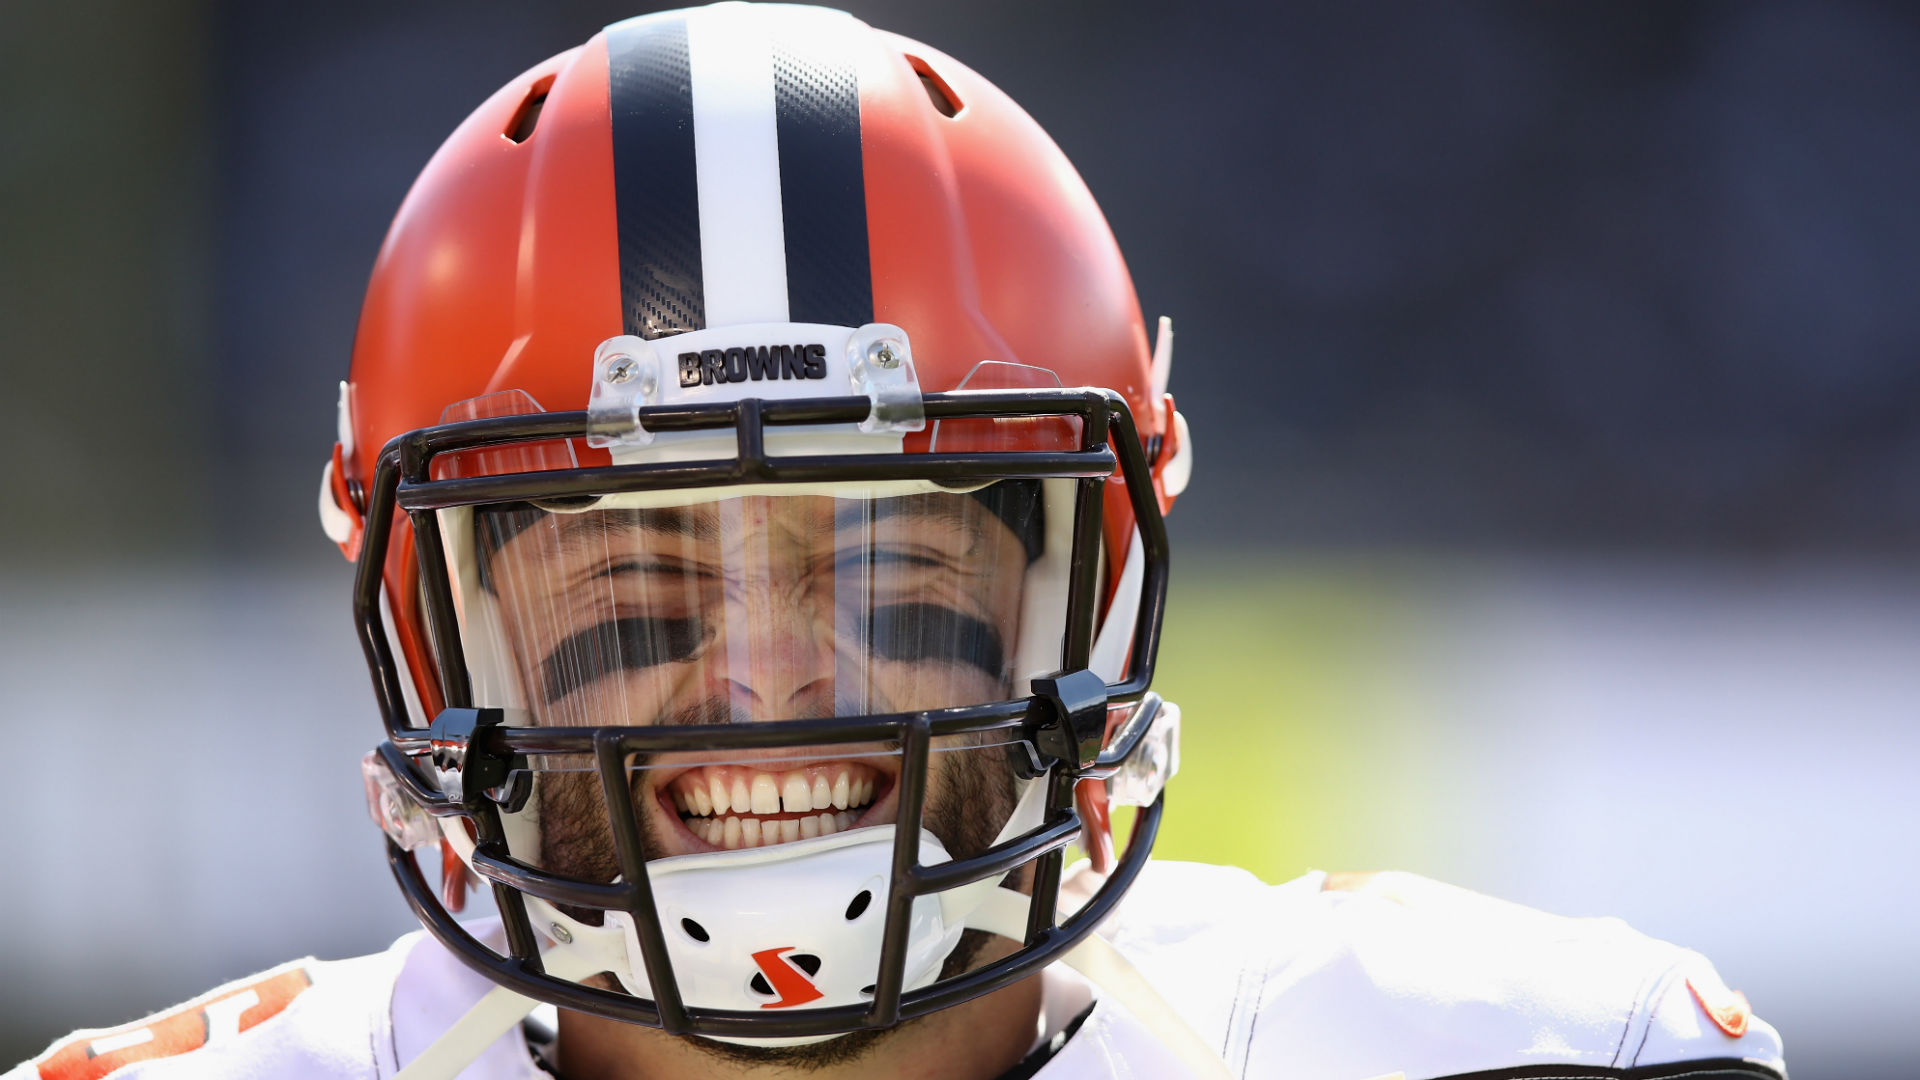 Baker Mayfield fined $10,026 for lewd gesture during touchdown celebration against Bengals